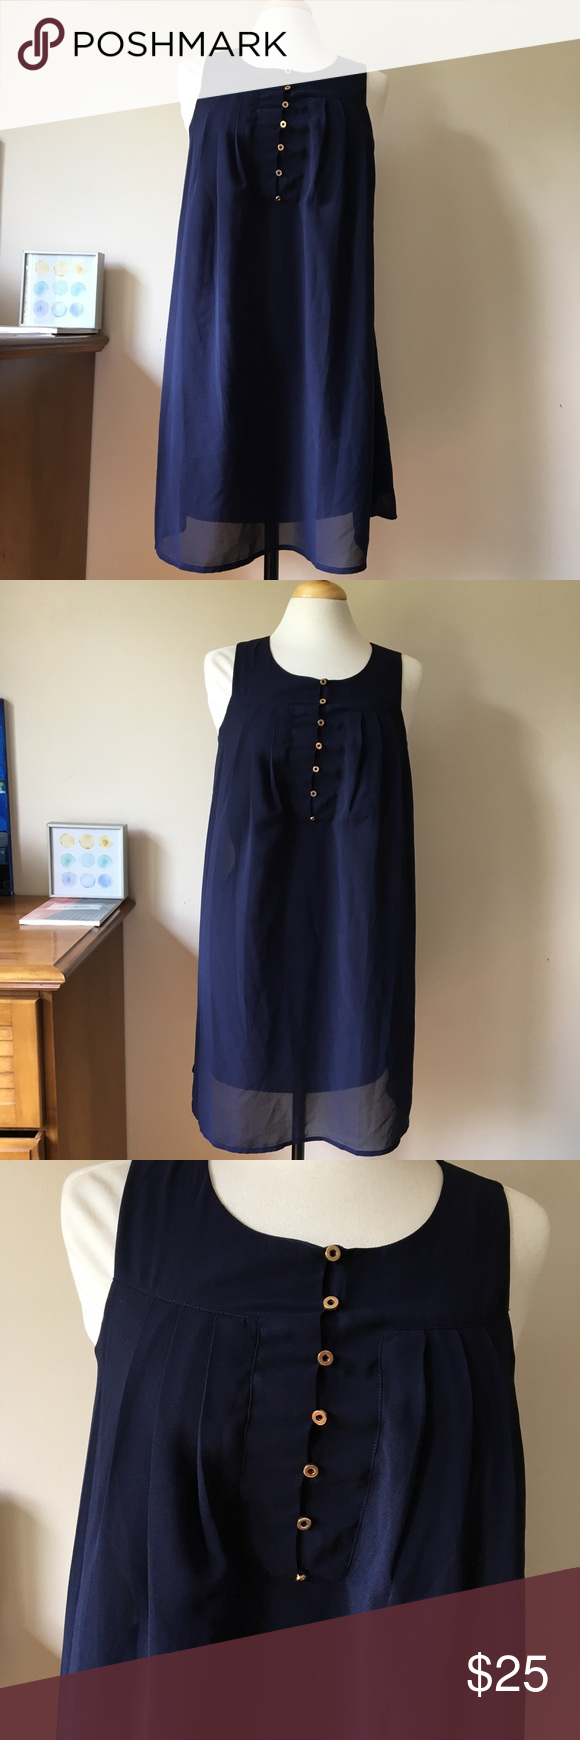 She and sky navy blue shift sleeveless dress flowy fabric and design